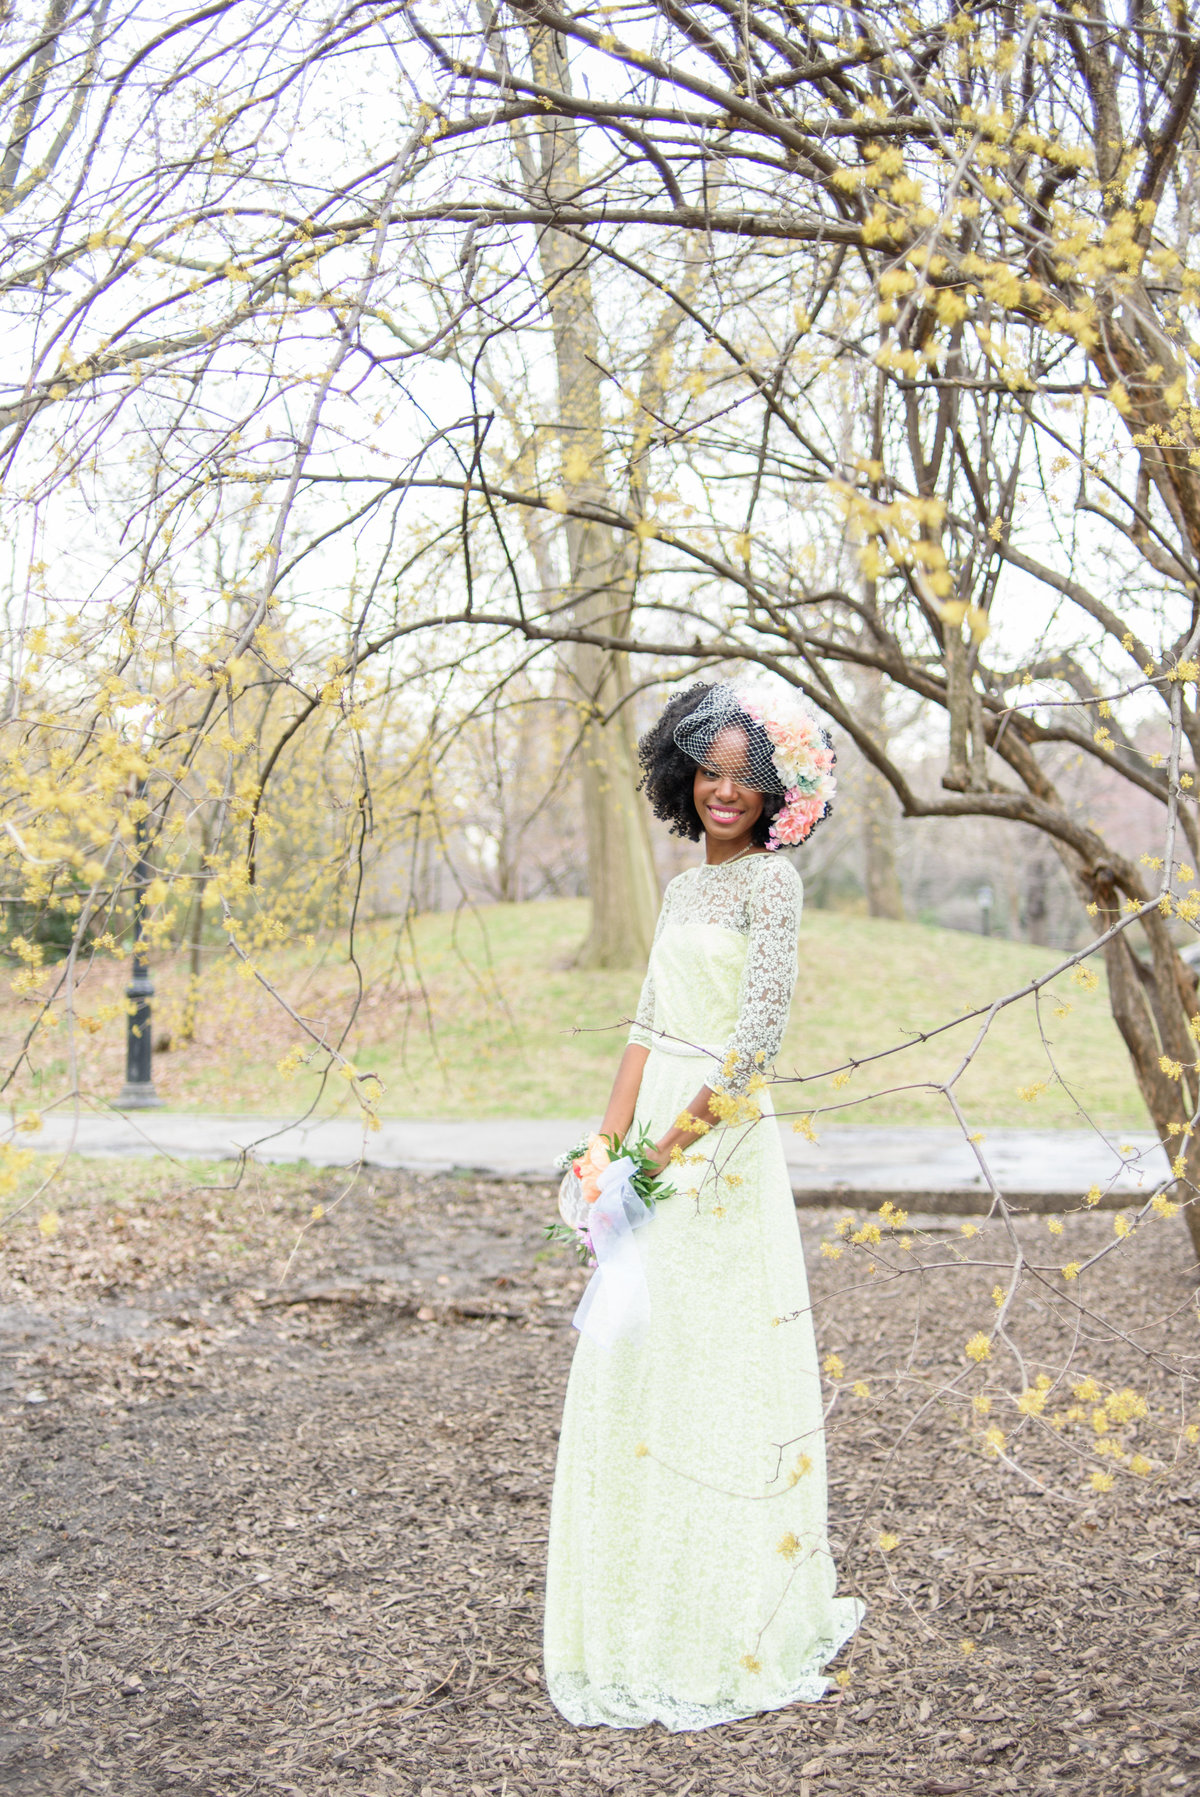 Central Park Wedding Photographer | Bridal Style Inspiration 2